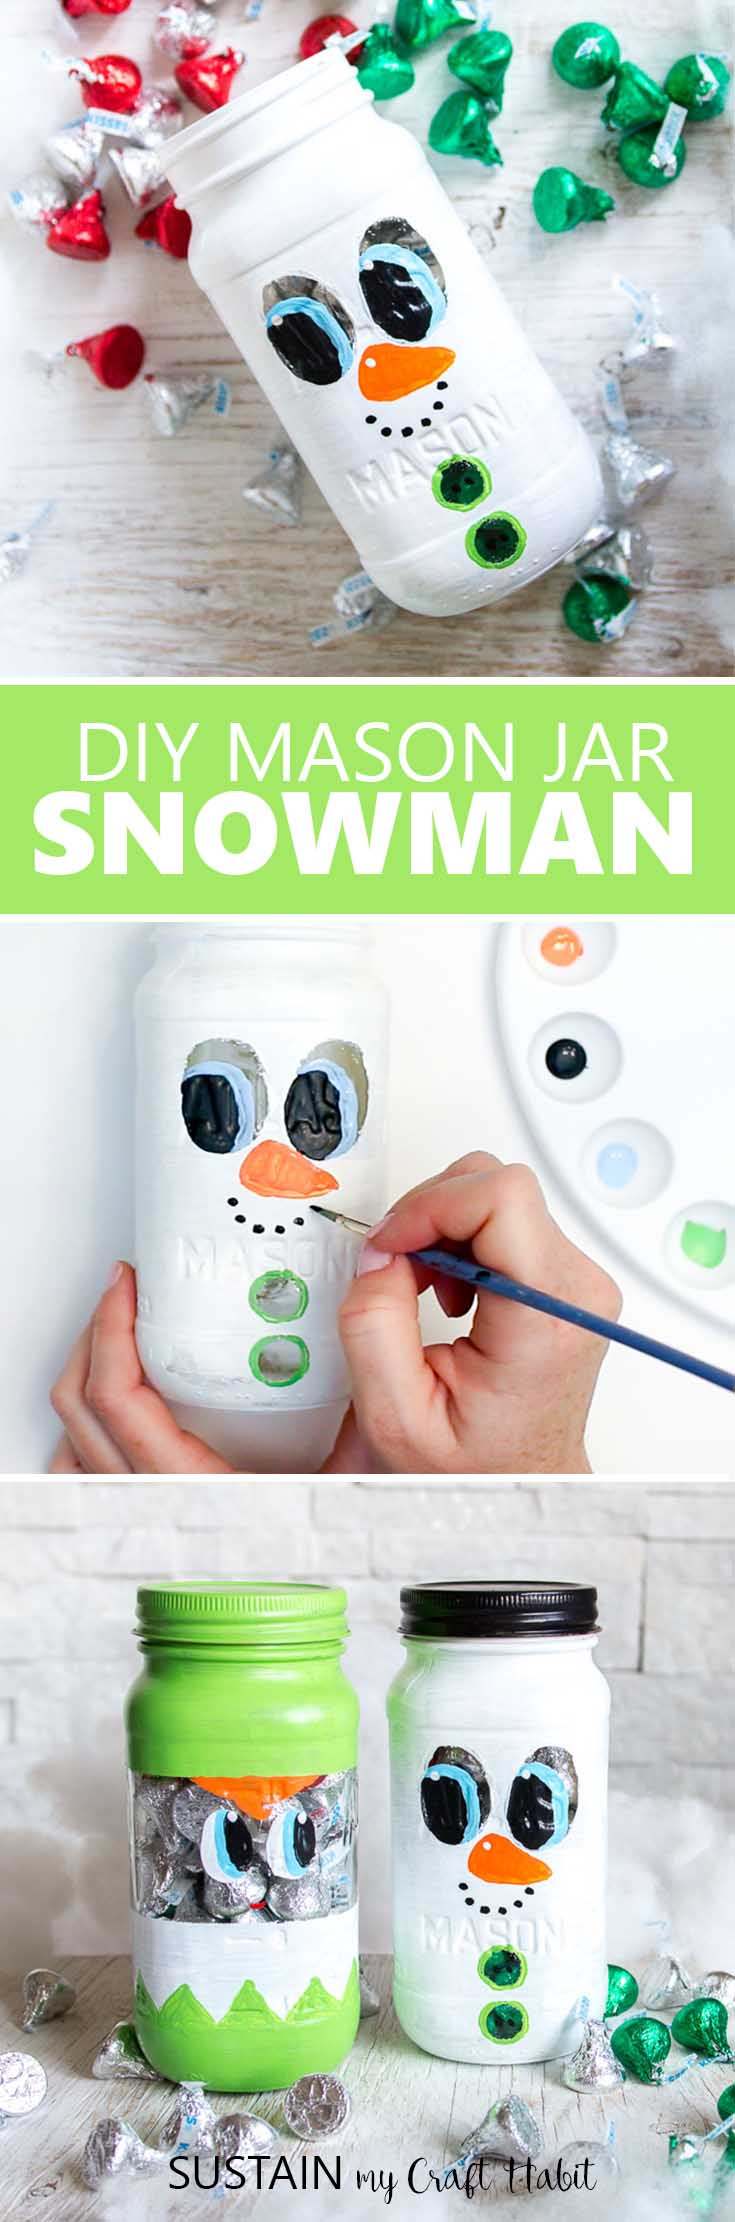 The cutest christmas mason jars gift ideas. Mason Jar Snowman tutorial. Handmade Secret Santa gift idea. DIY Mason Jar Christmas crafts. #masonjar #Christmascraft #DIY #SecretSanta #StockingStuffer